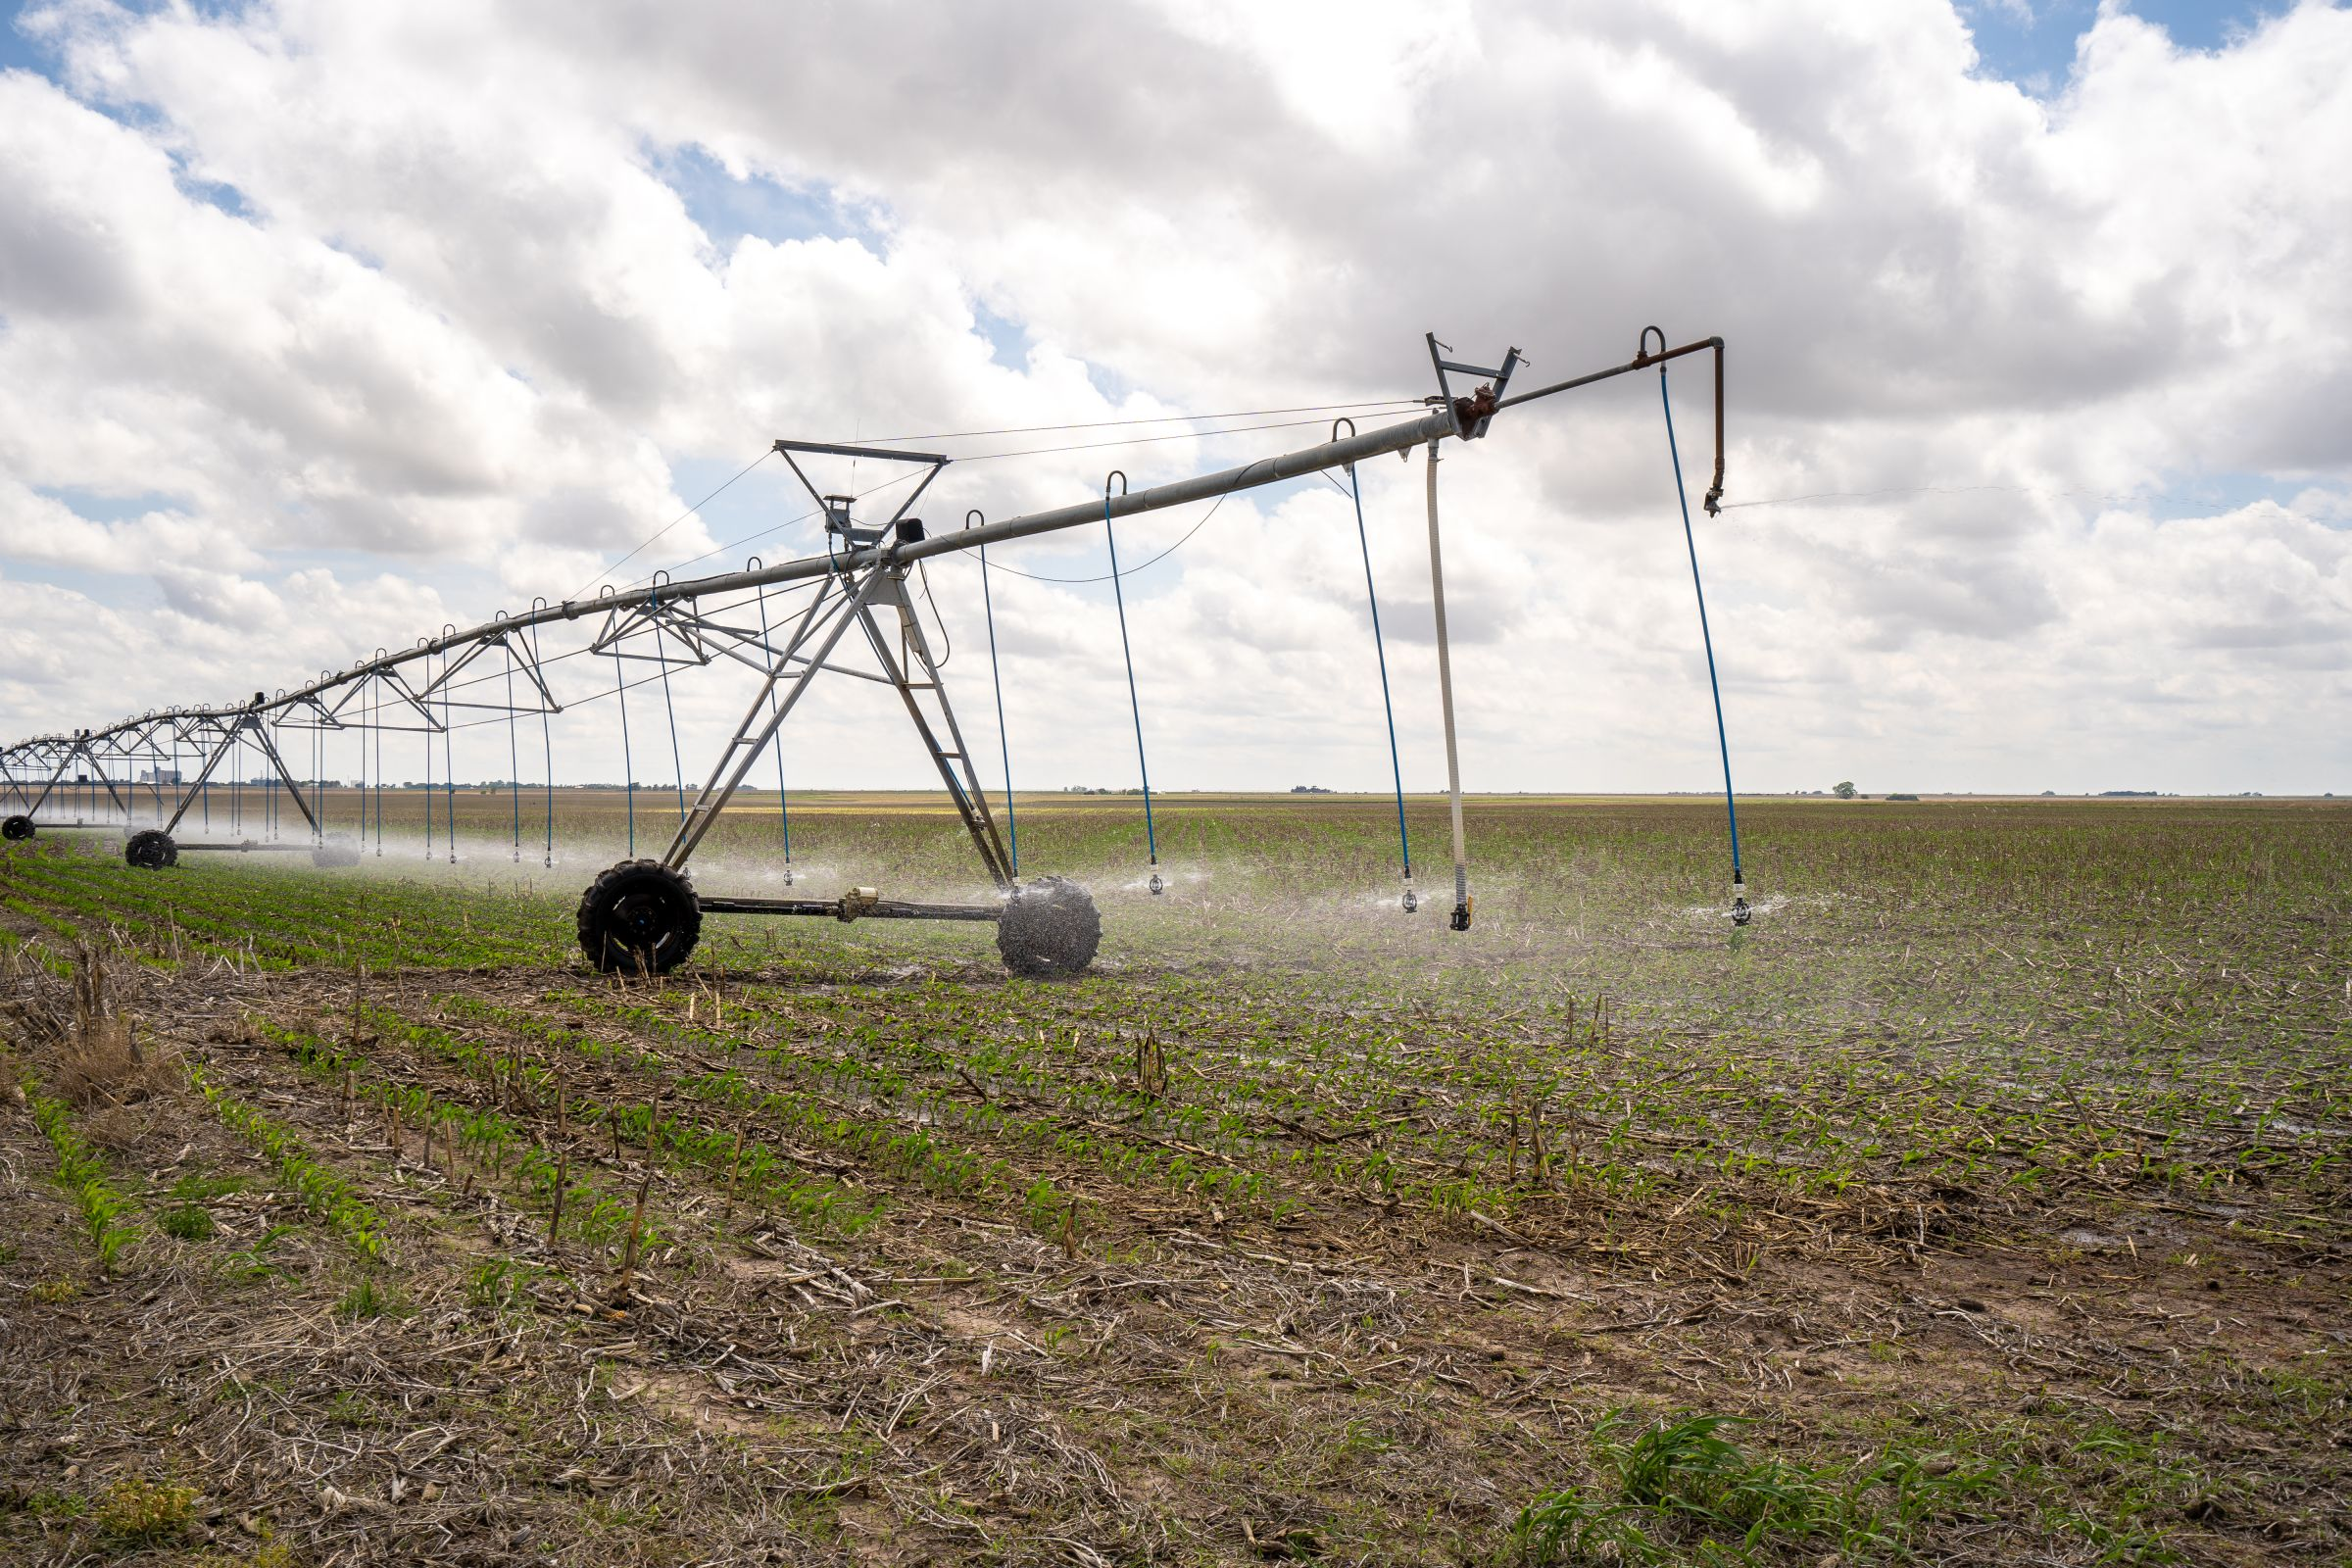 auctions-gray-haskell-county-kansas-2990-acres-listing-number-15570-1-2021-06-11-184225.jpeg